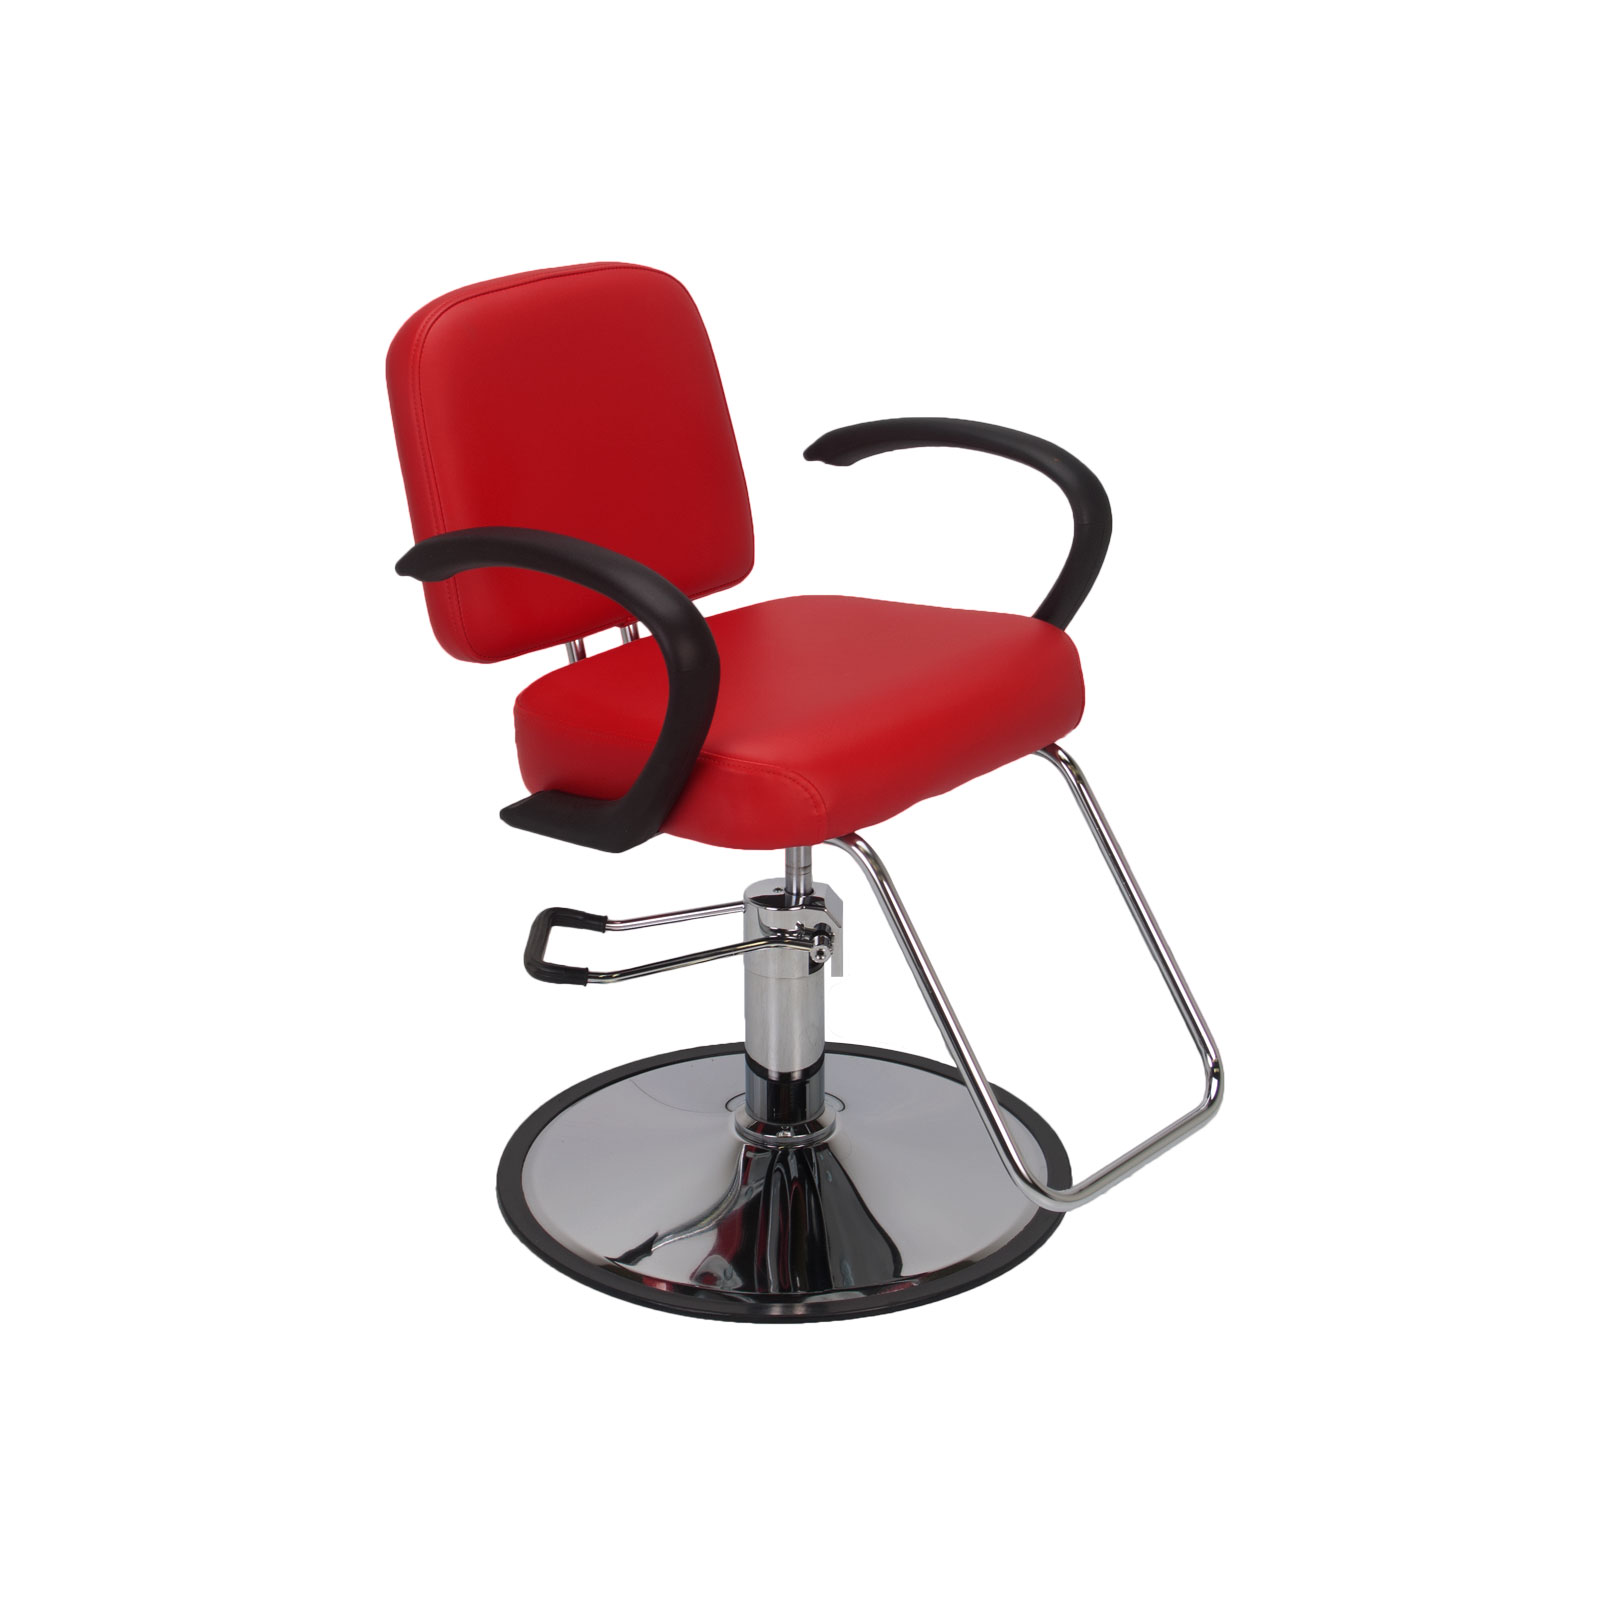 Red Salon Chairs Salon Chair Red Formdecor